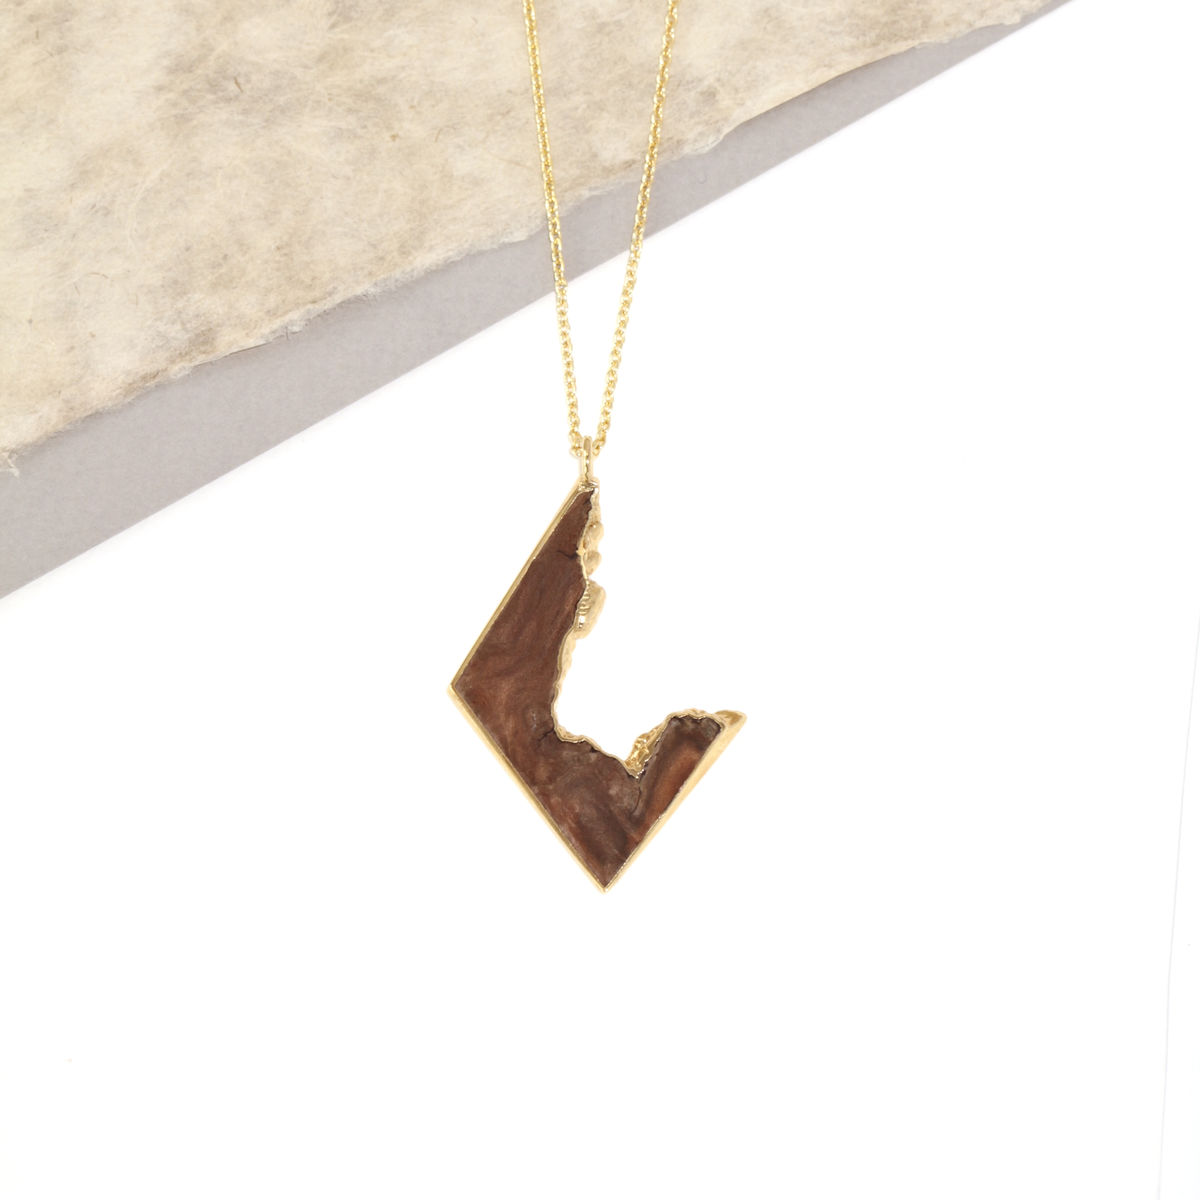 Iron Wood and 22ct yellow gold finish- To Order Only - product images  of